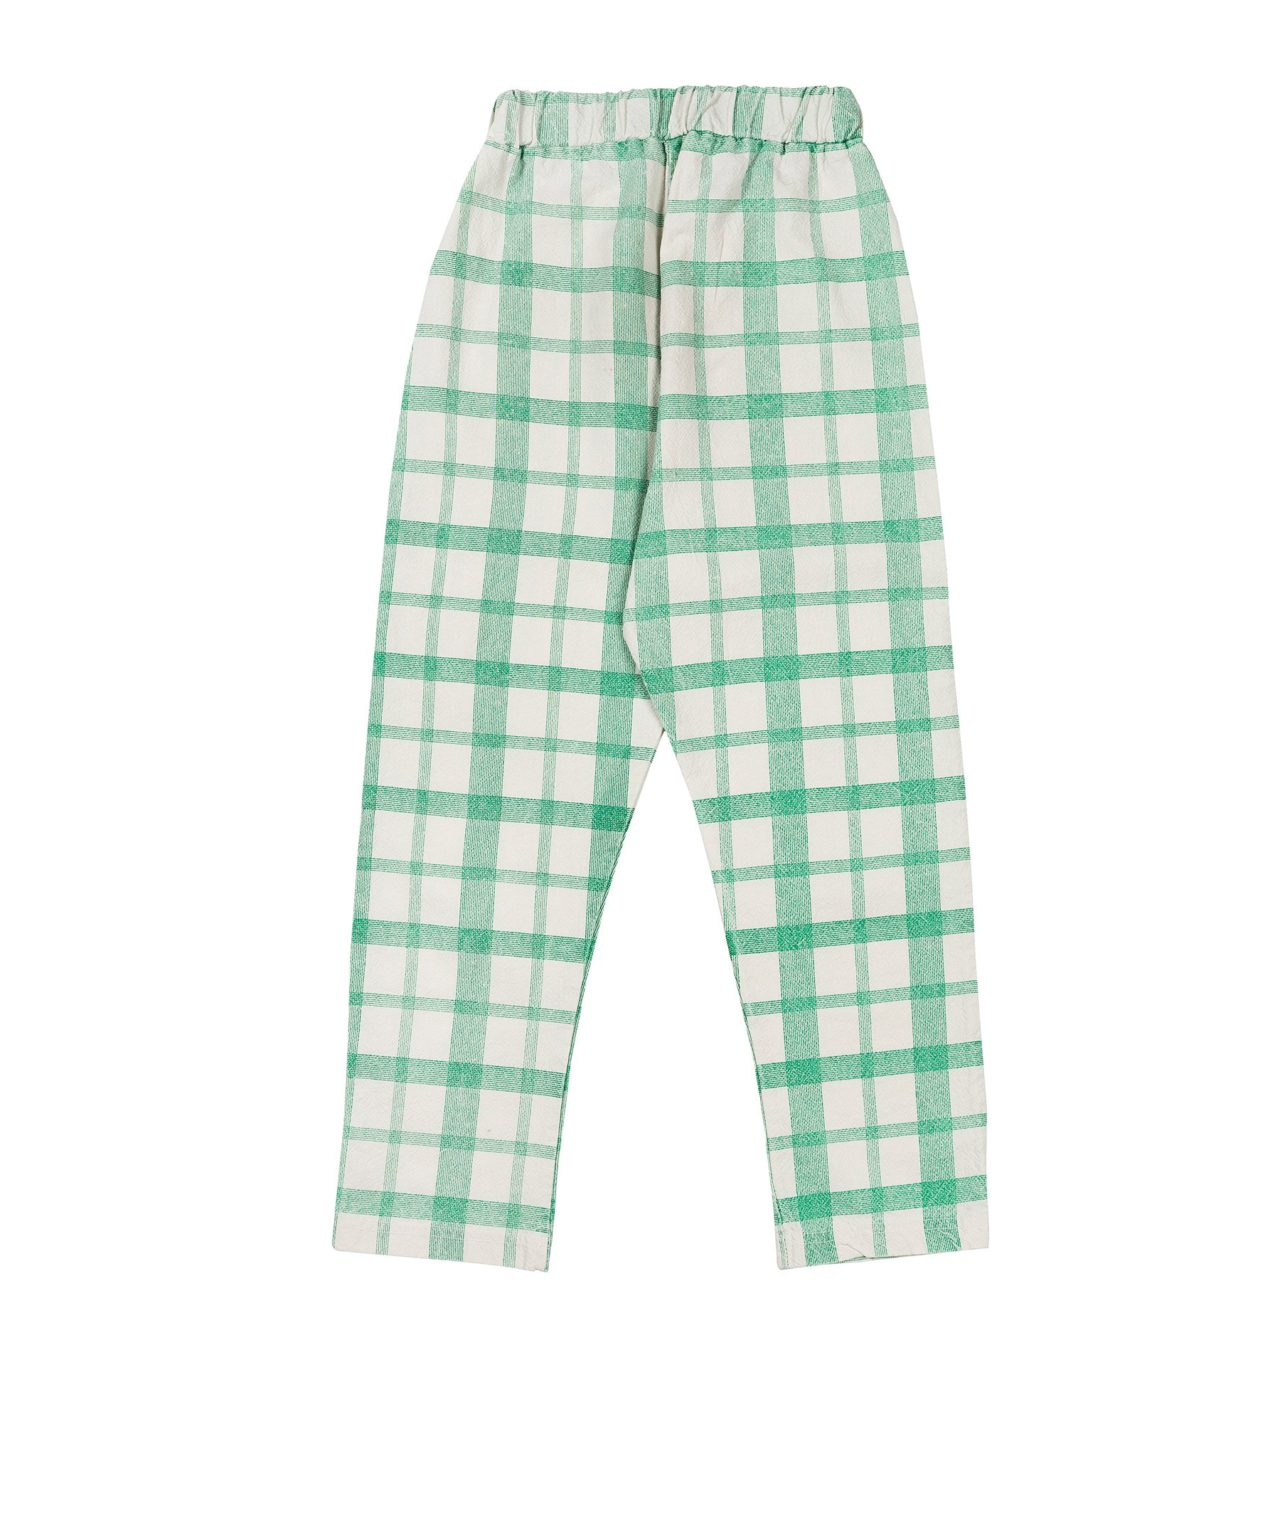 thecampamento_checks_trousers_02